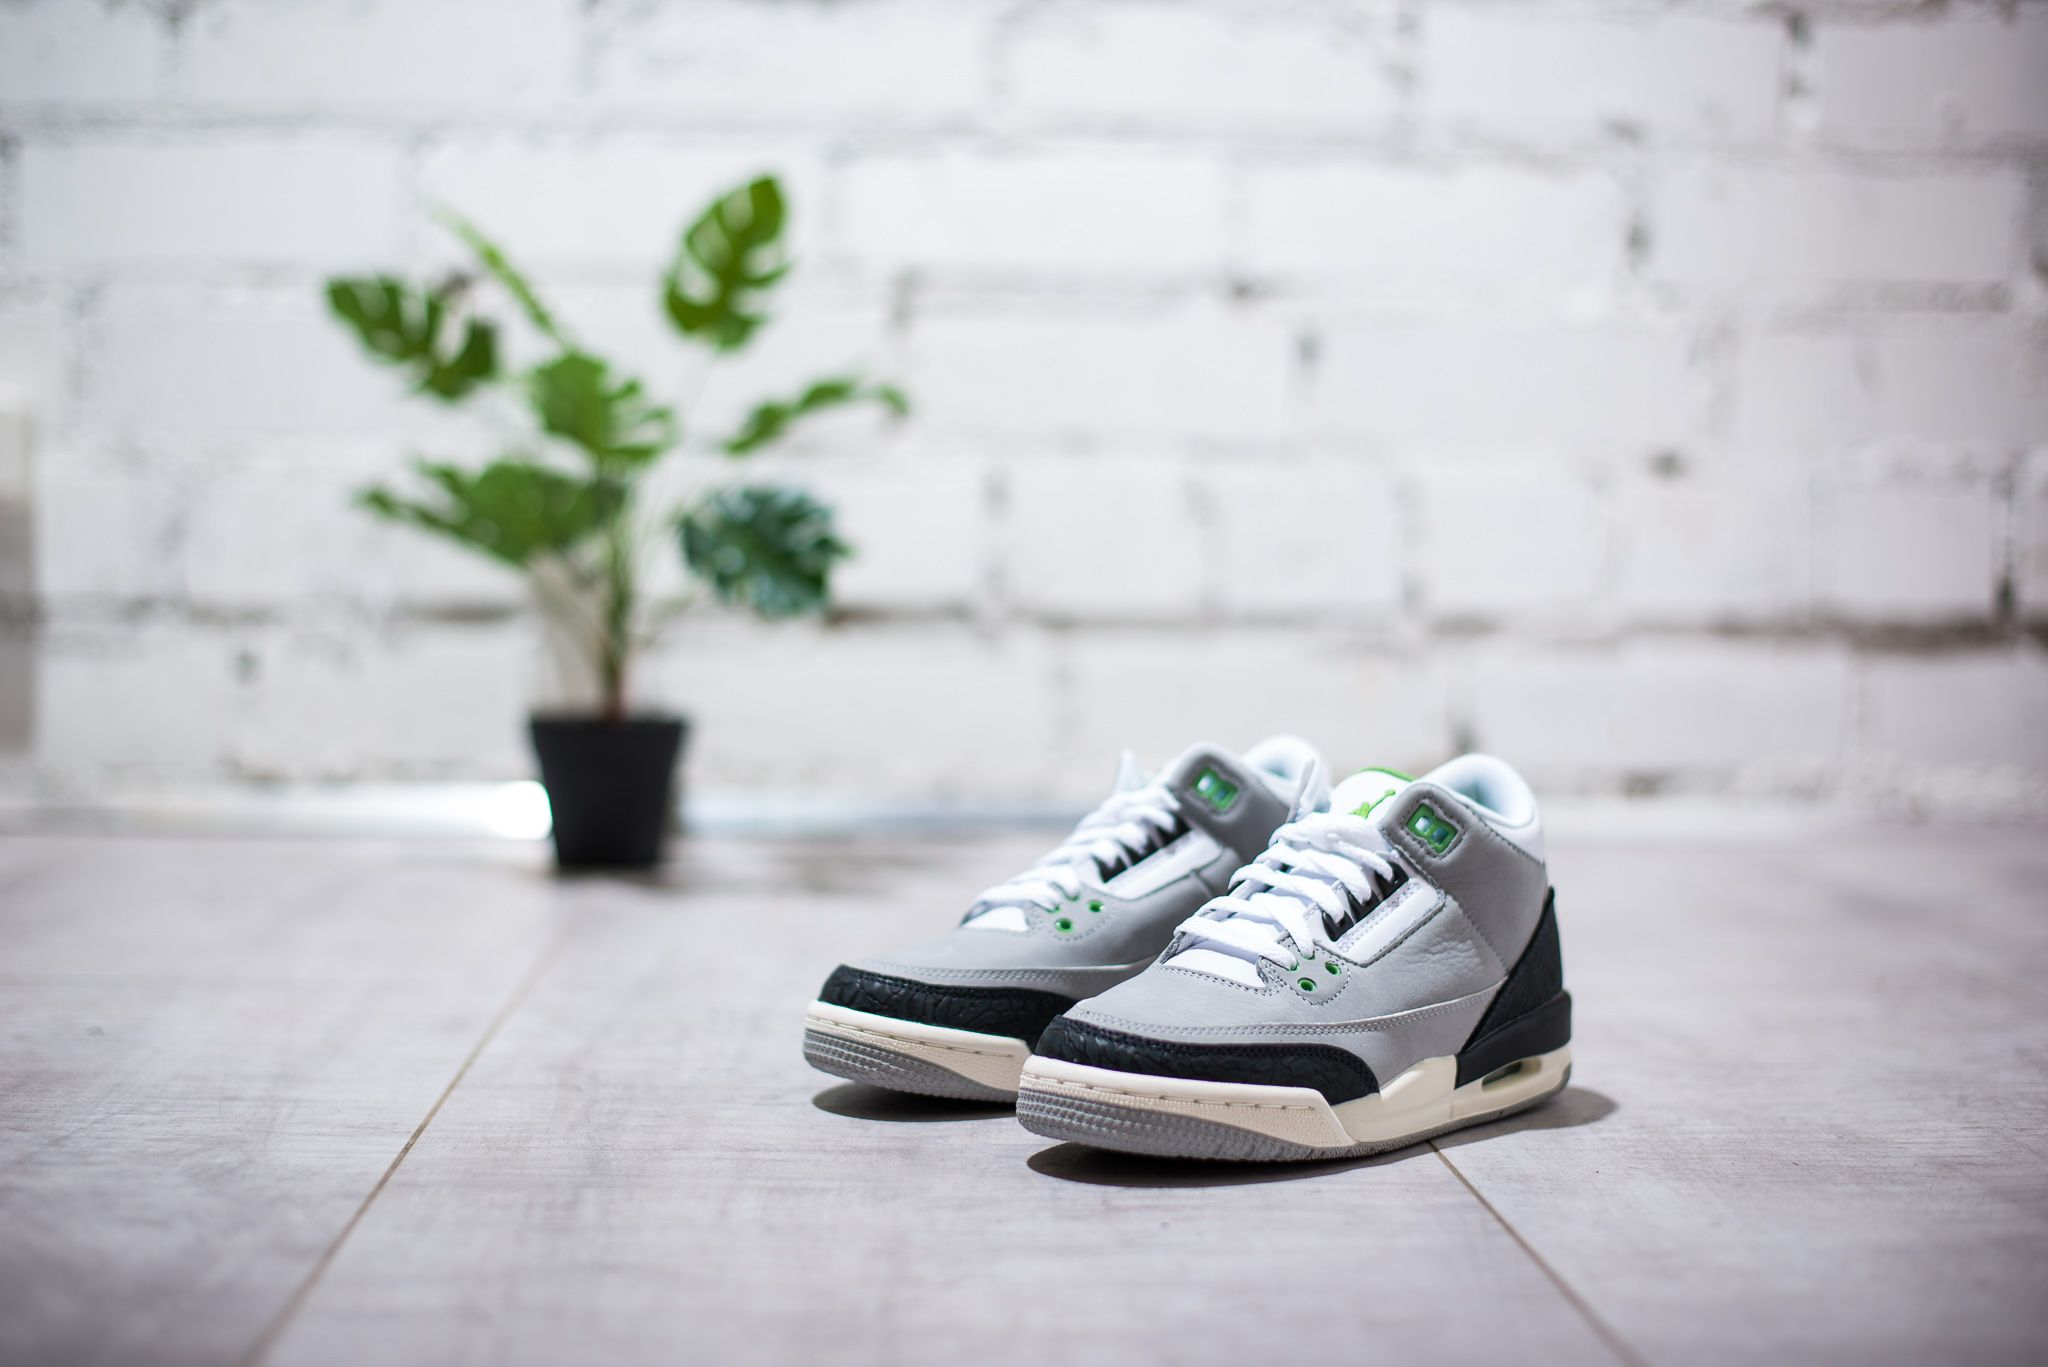 730f64b686480e Air Jordan 3 Retro Chlorophyll sneakers